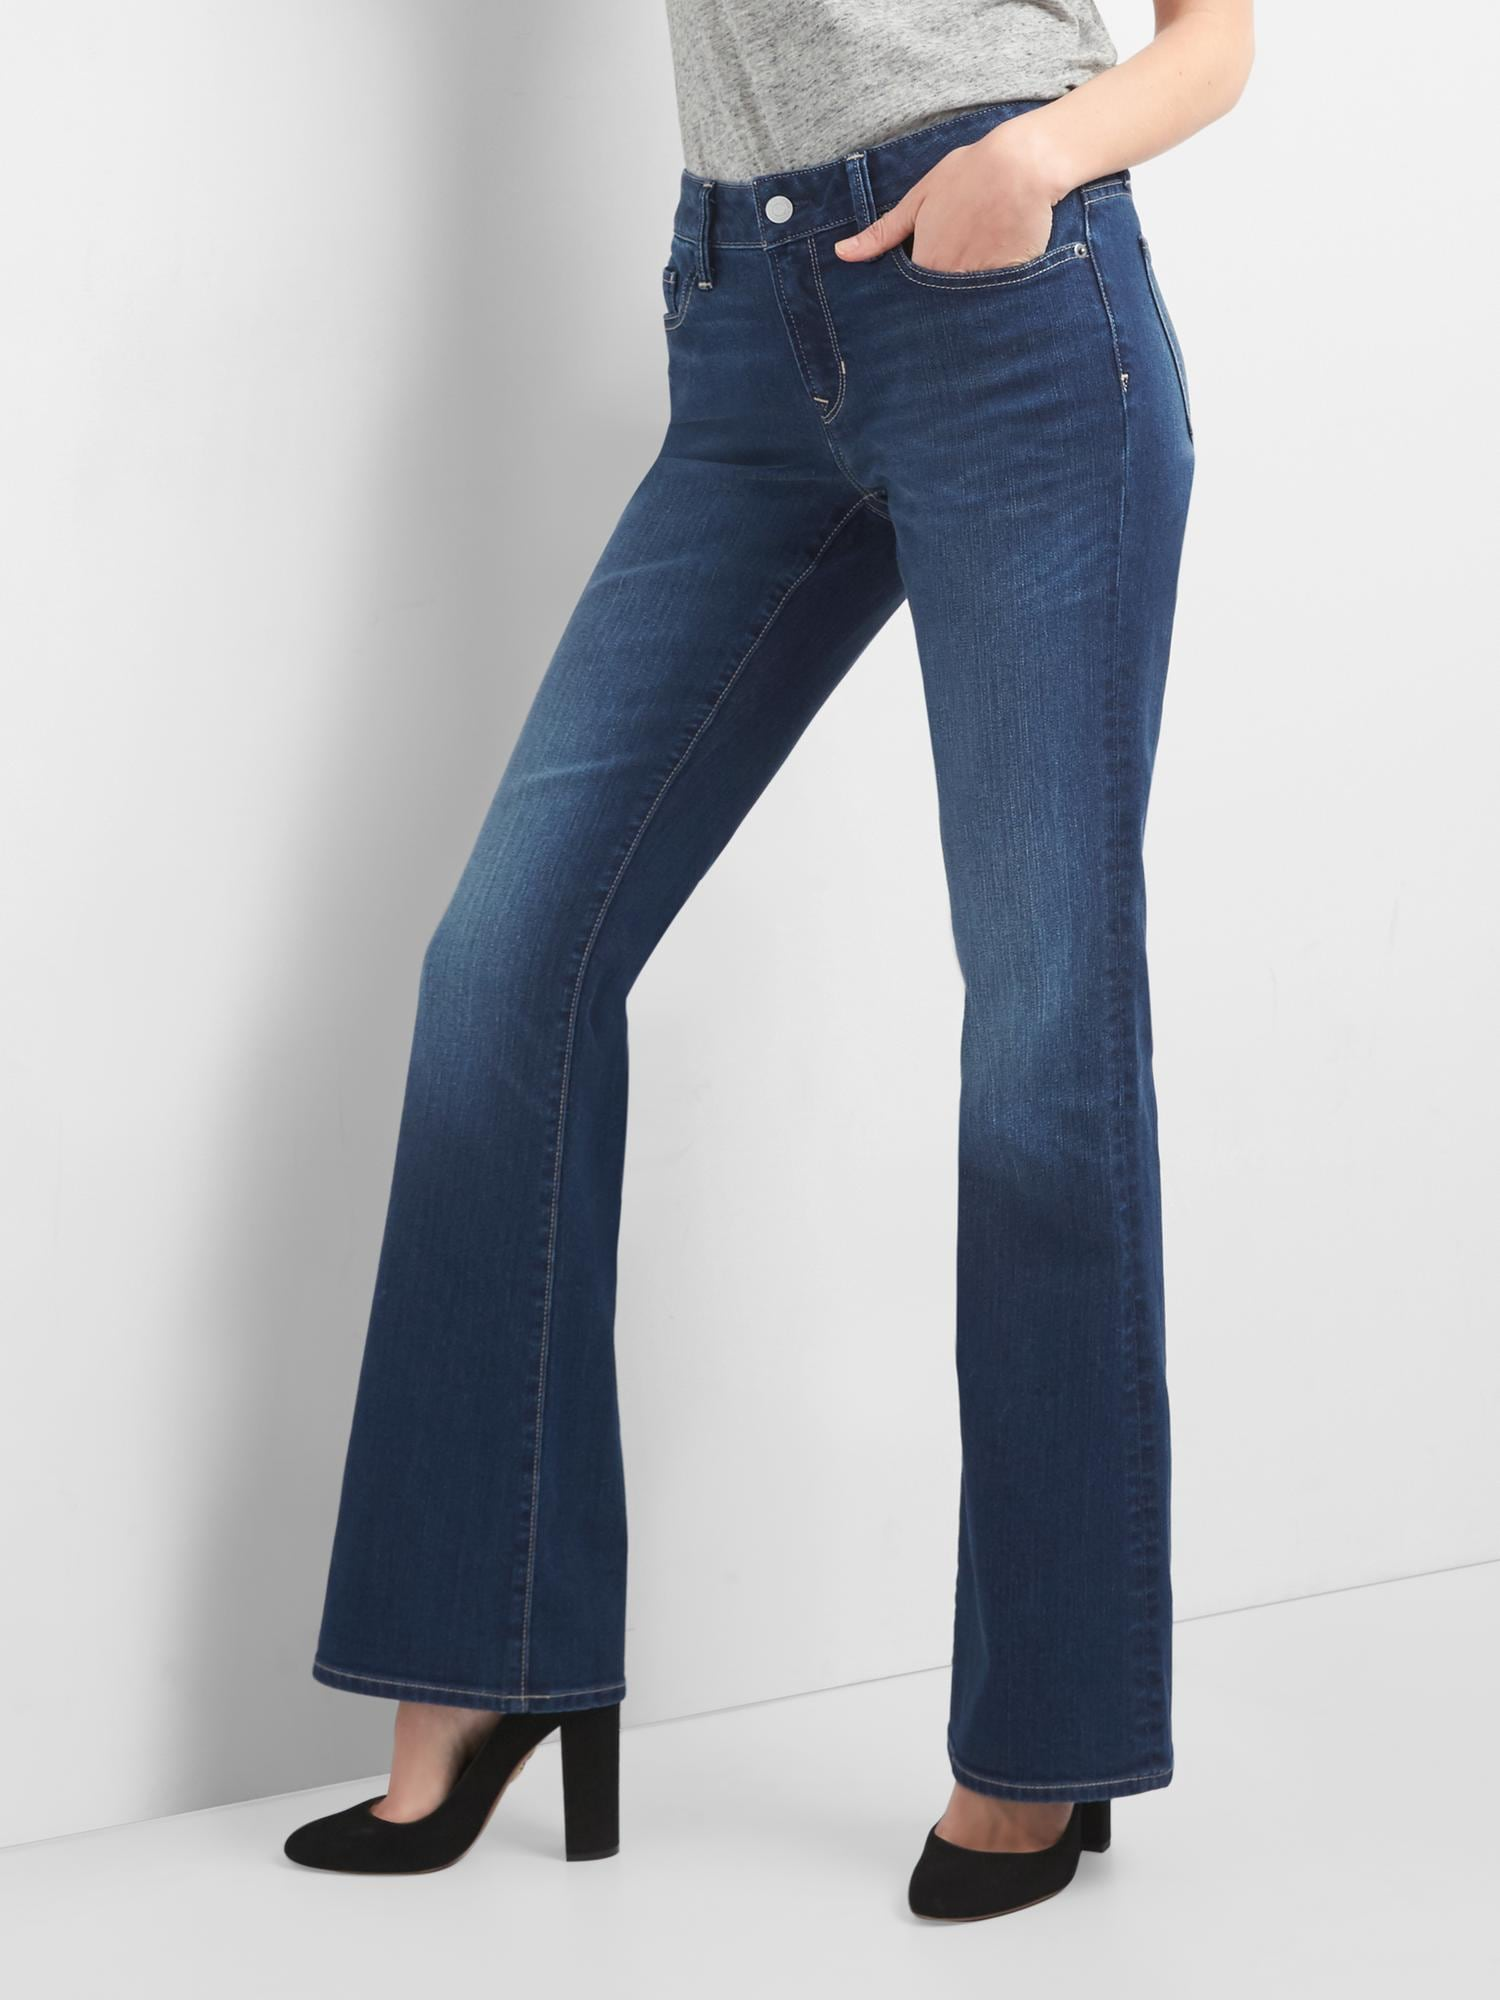 Gap Mid Rise Long & Lean Jeans